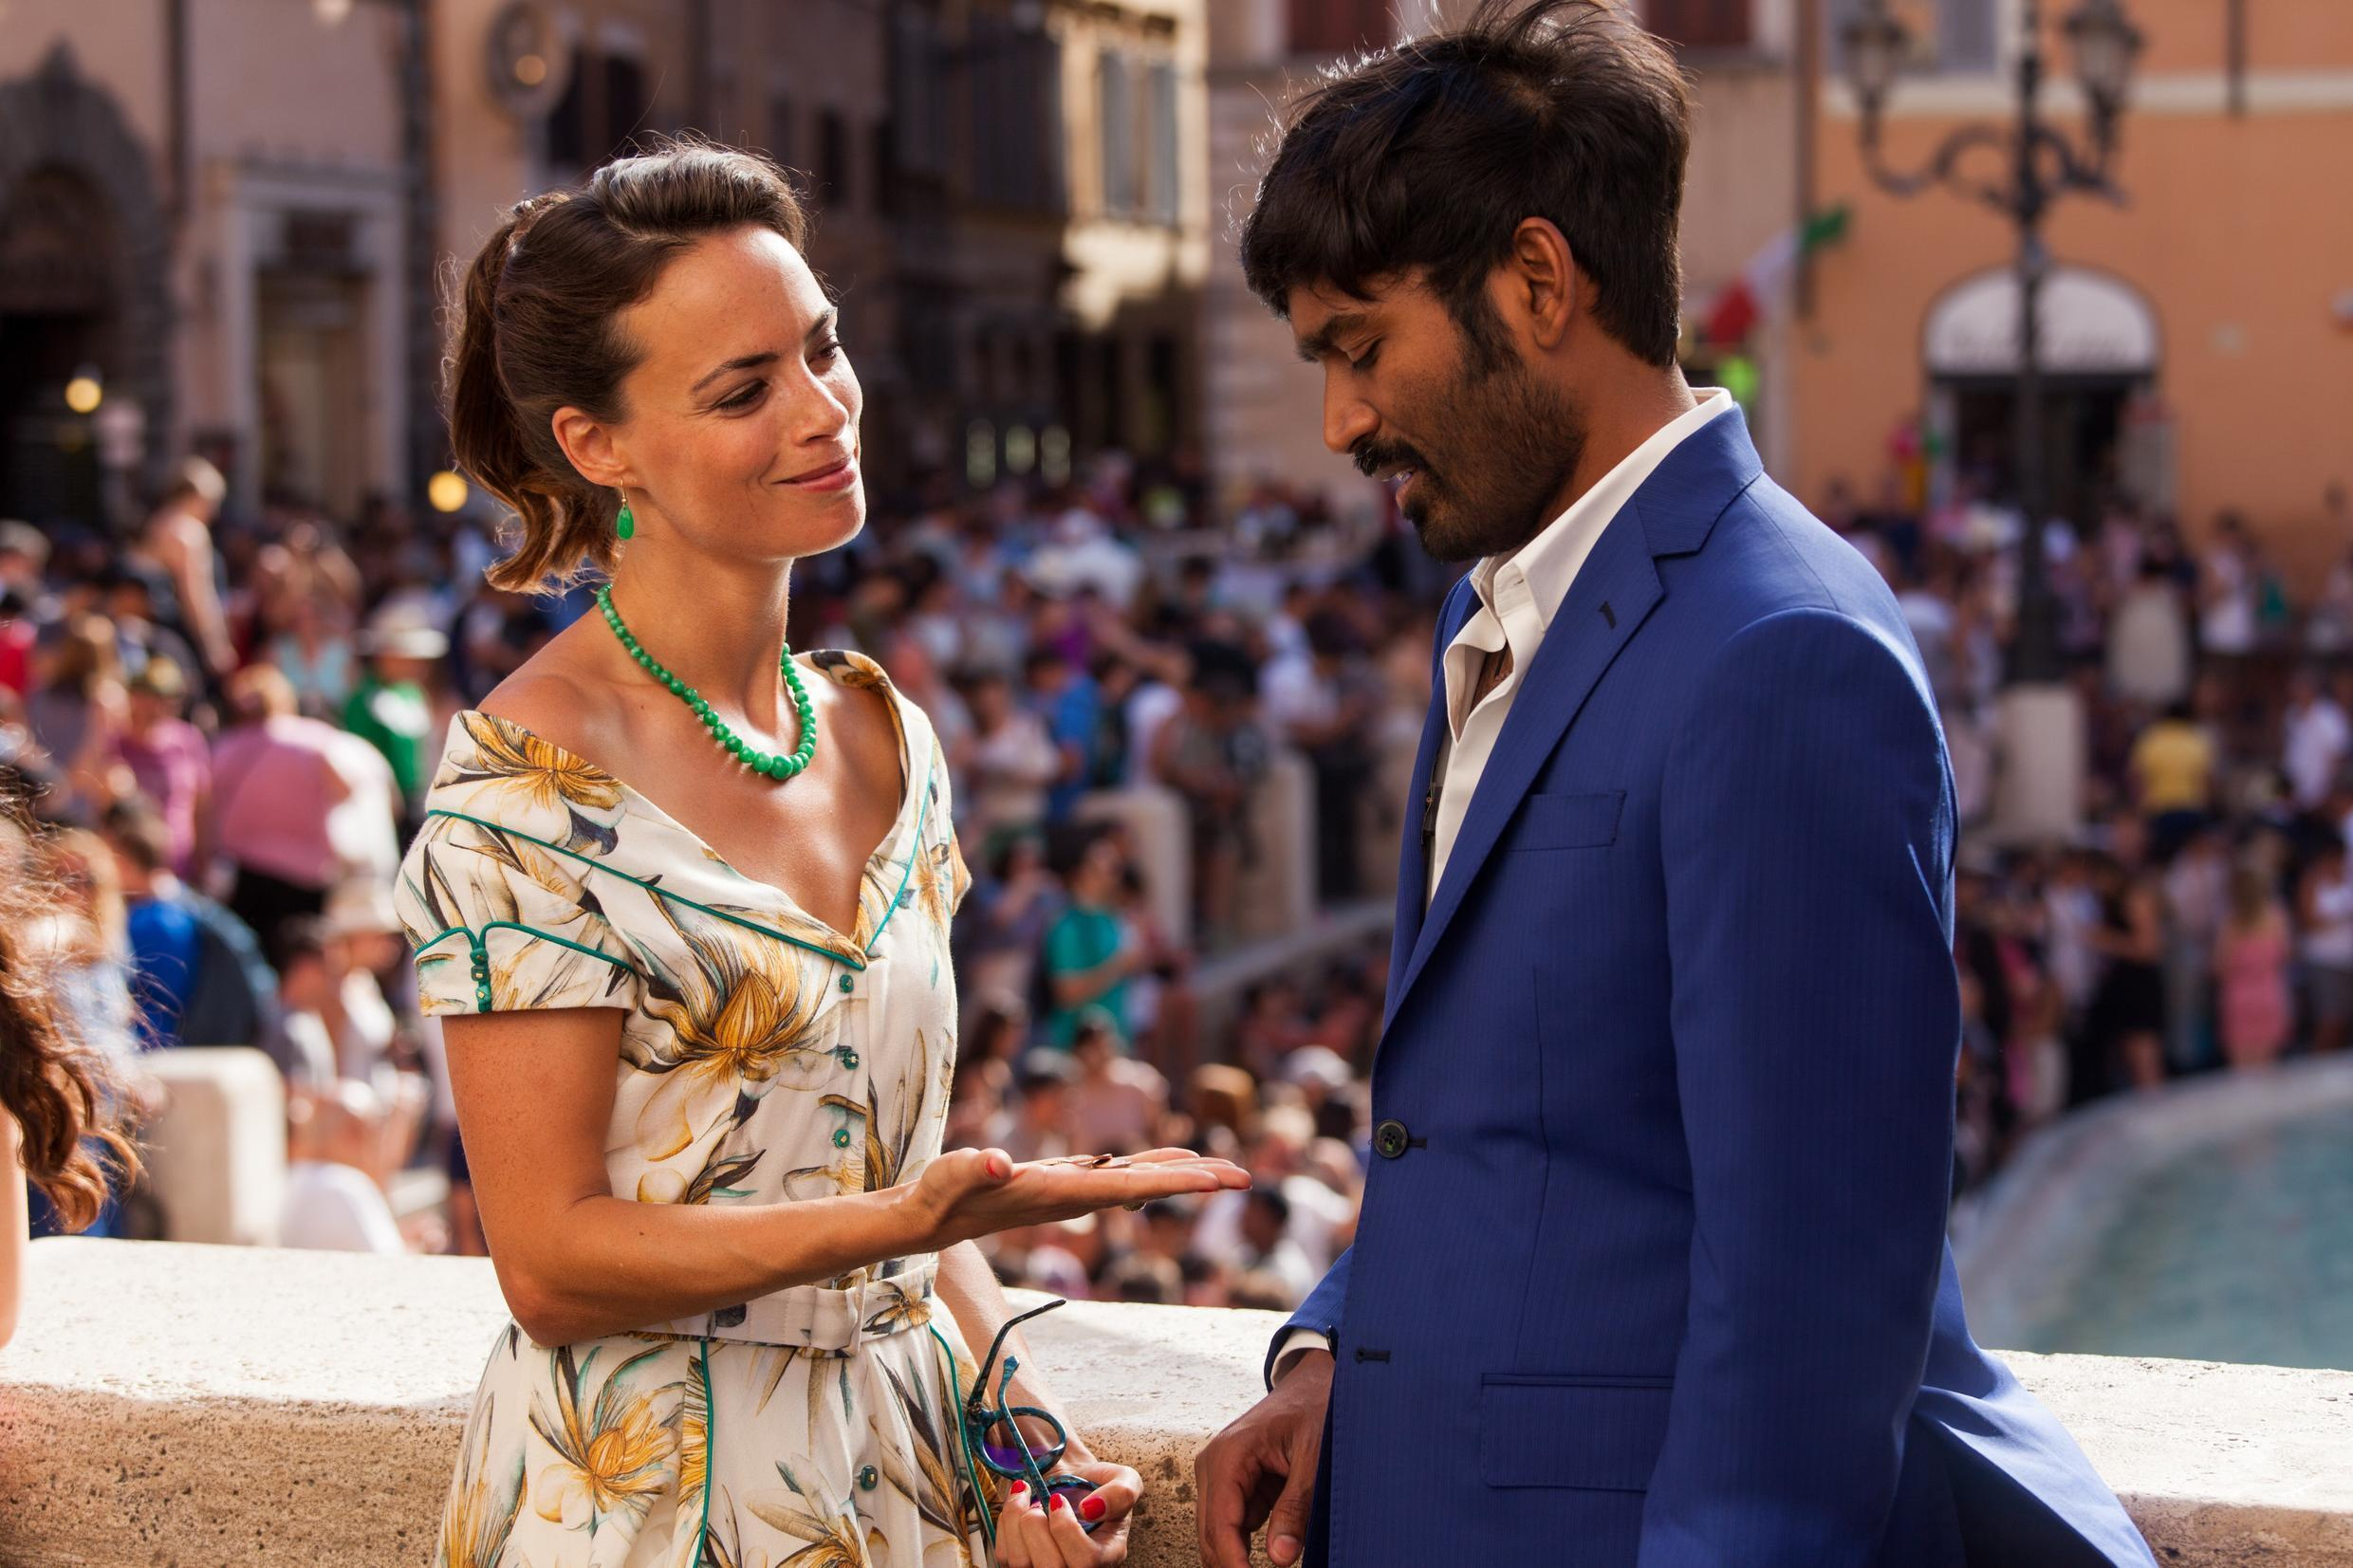 Bérénice Béjo and Dhanush make a wish in Rome in The Fakir's Extraordinary Journey directed by Ken Scott, May 2019